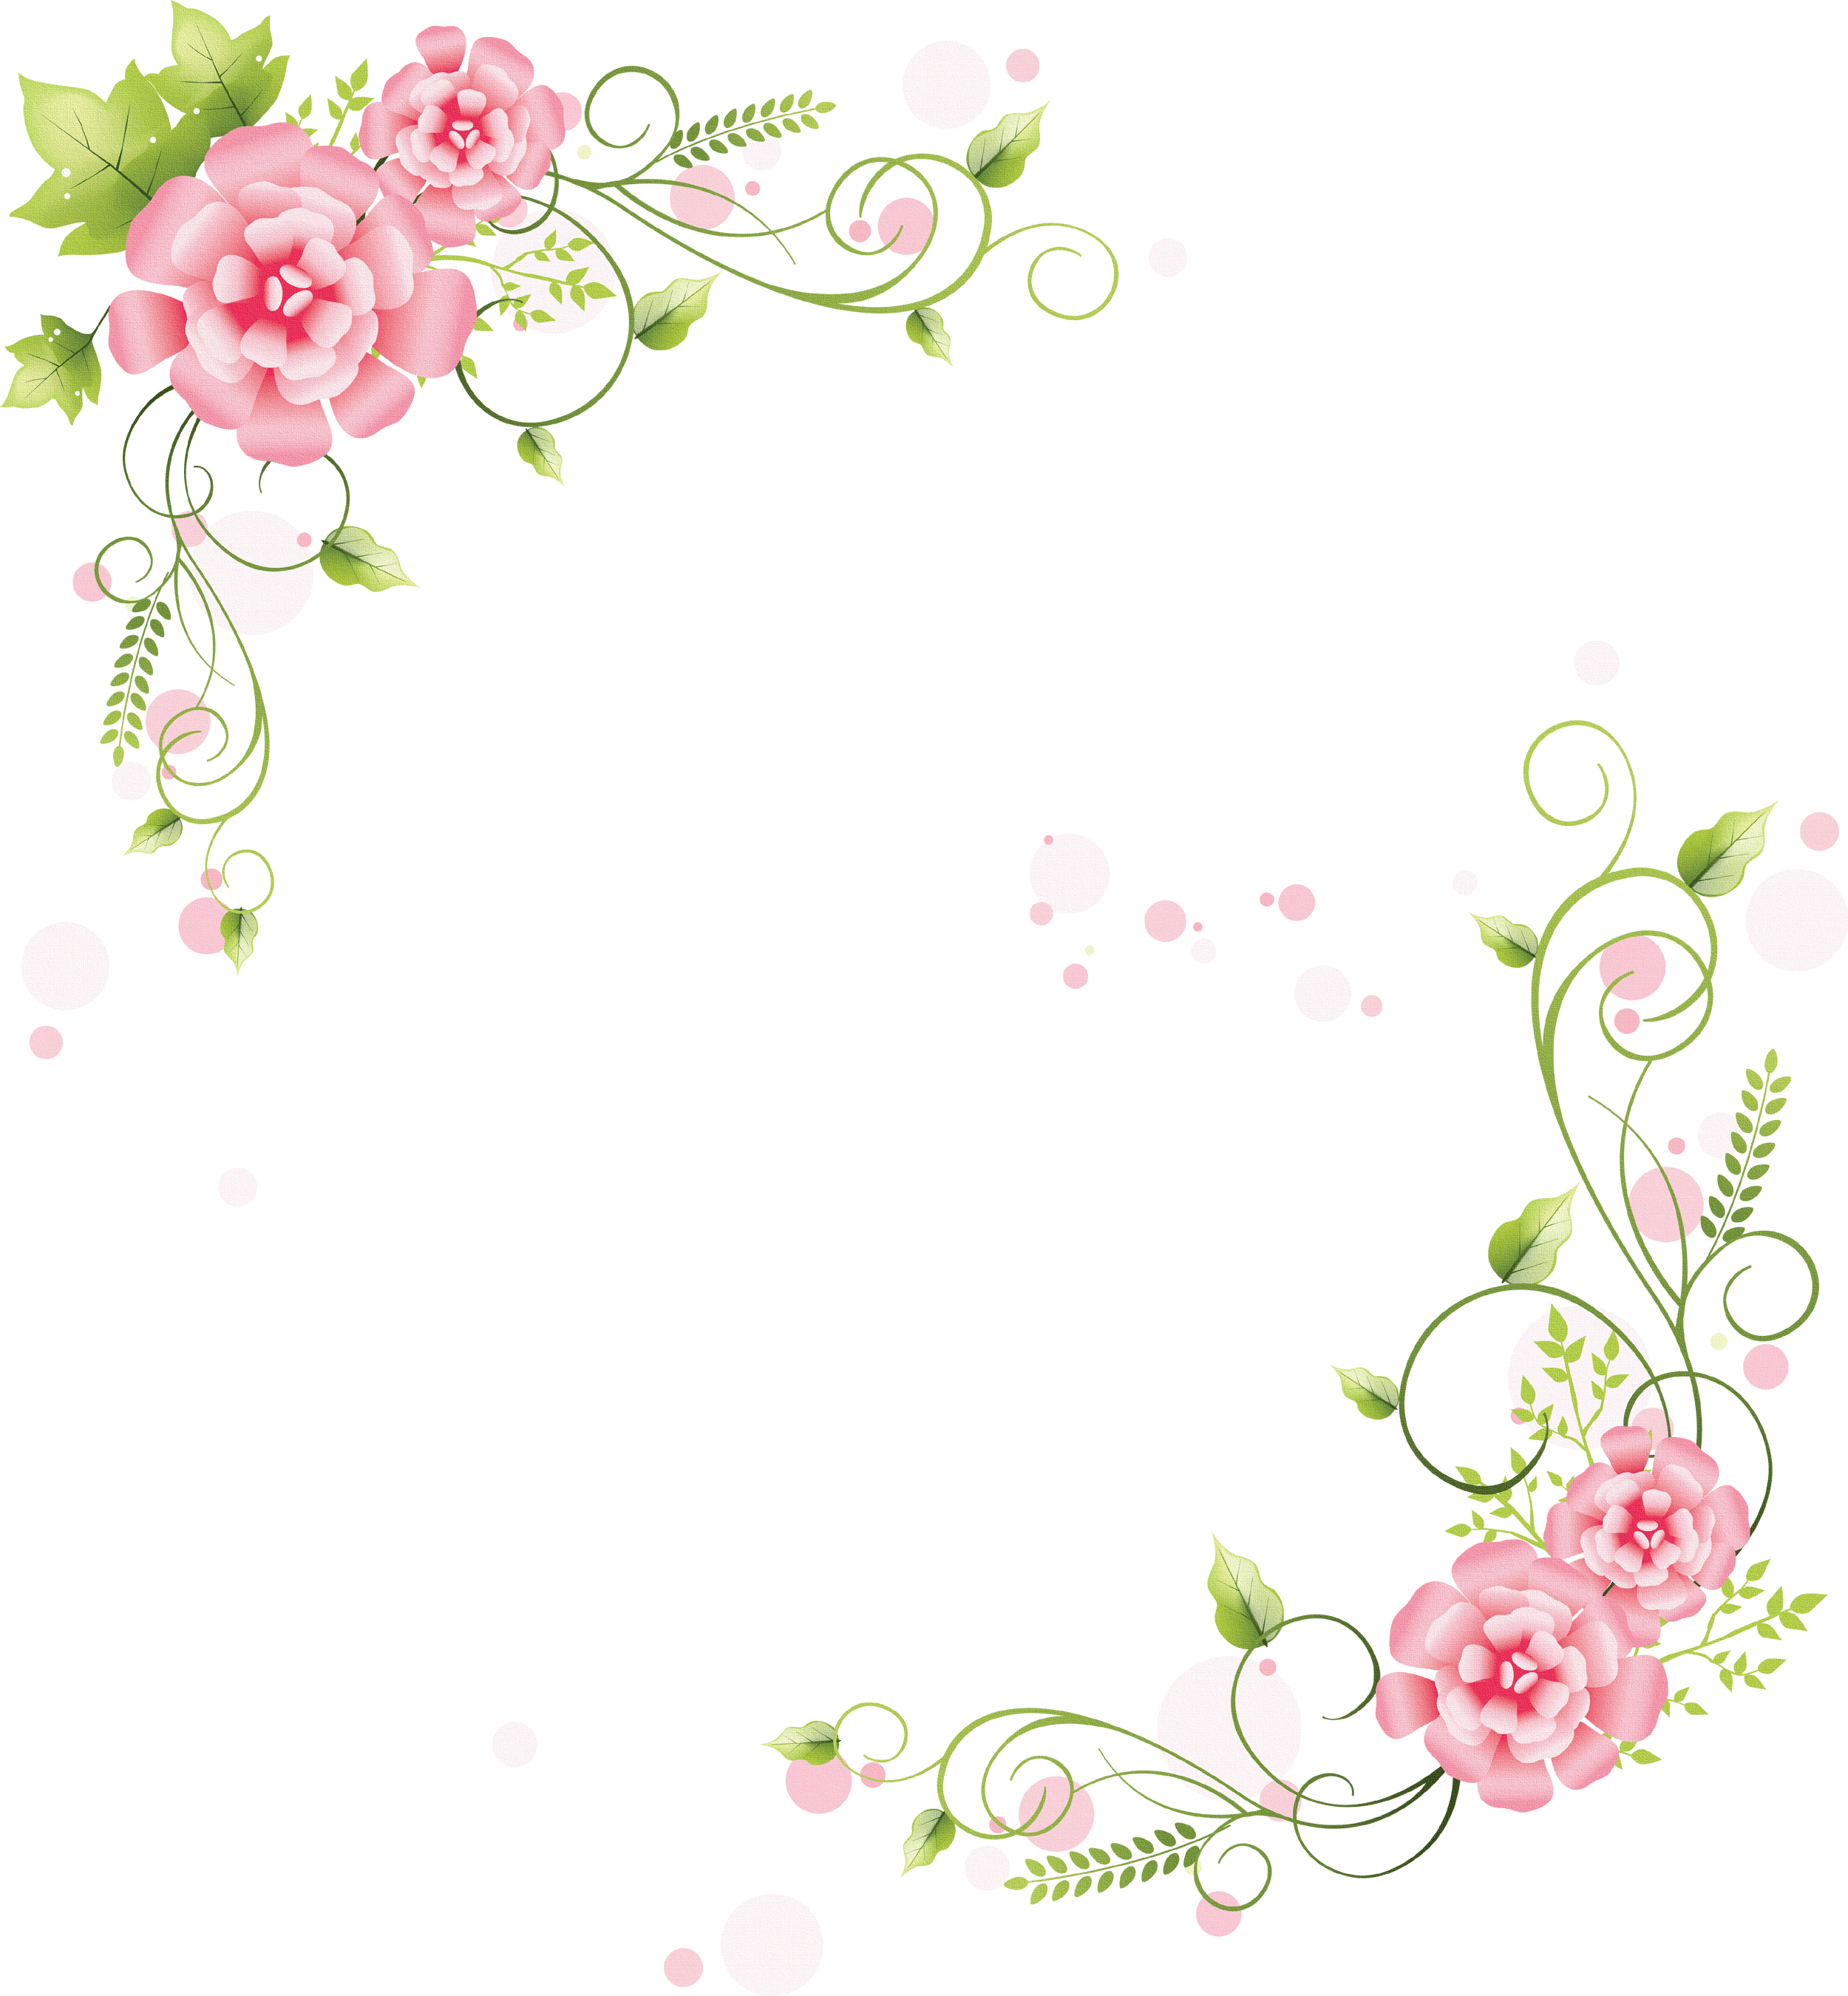 Lace flower clipart jpg library download flowers png   壁紙・背景イラスト/花のフレーム・外枠 No.186 ... jpg library download